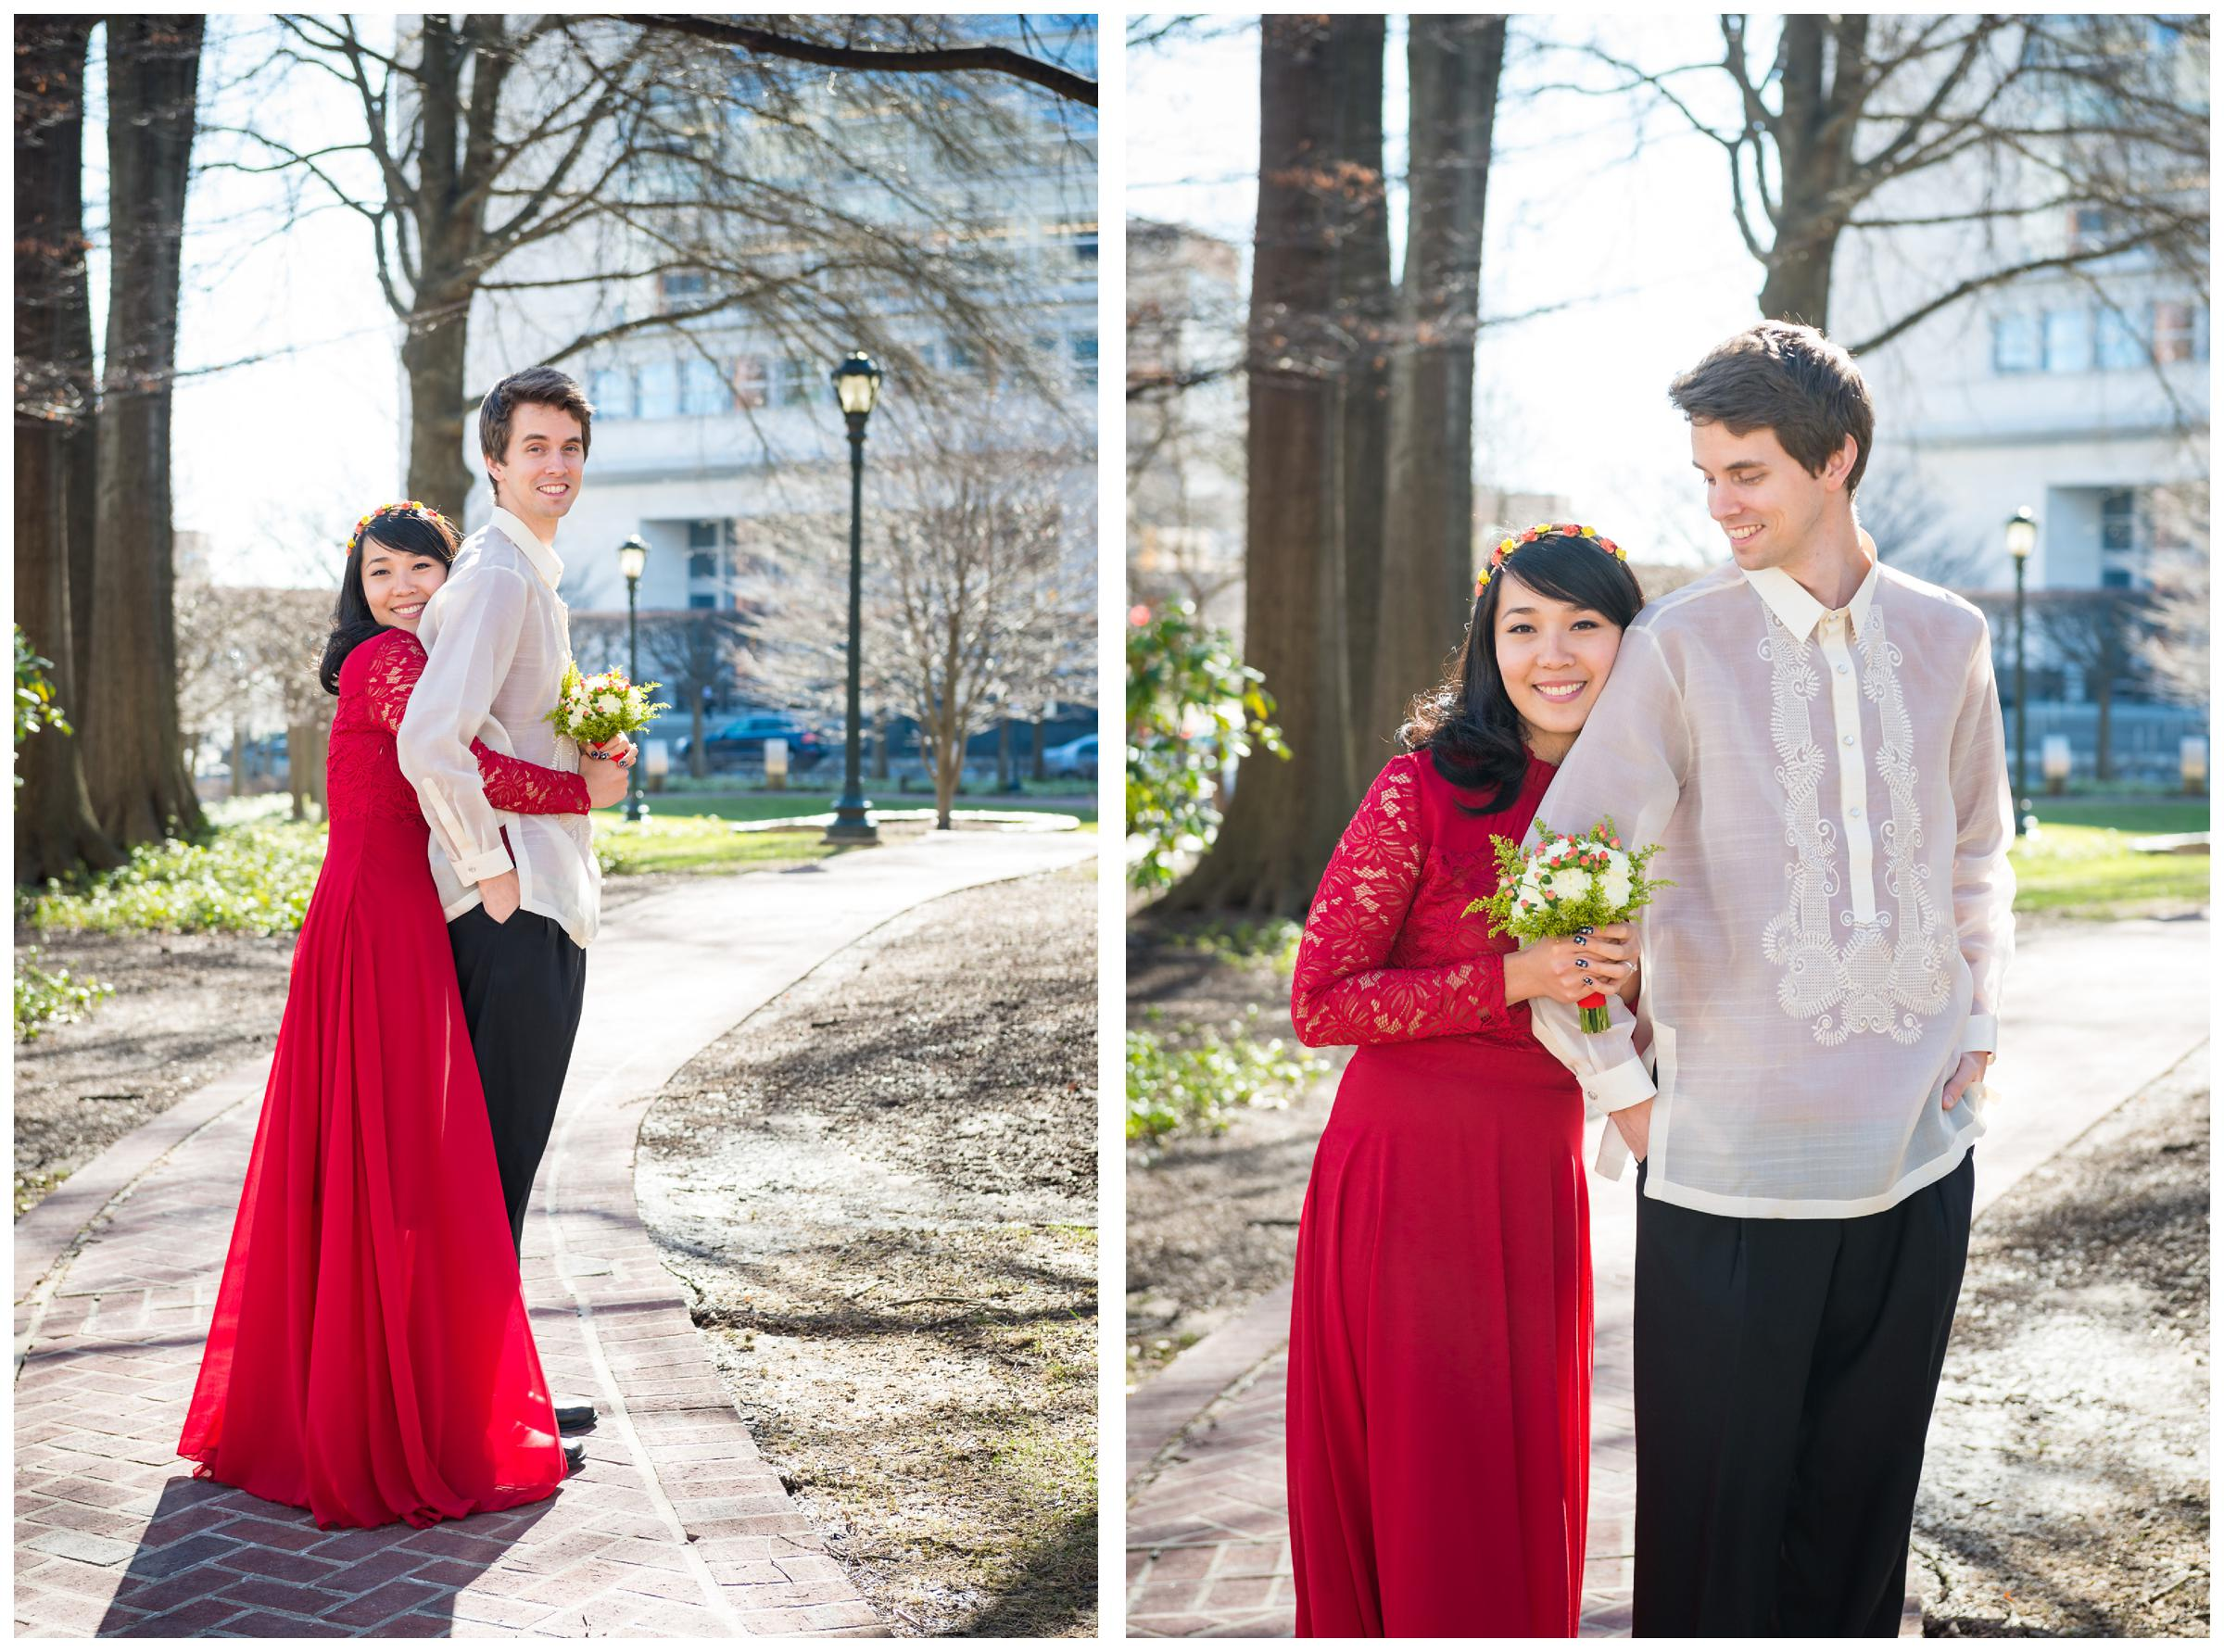 Bride And Groom Wearing Filipino Wedding Clothes Red Gown